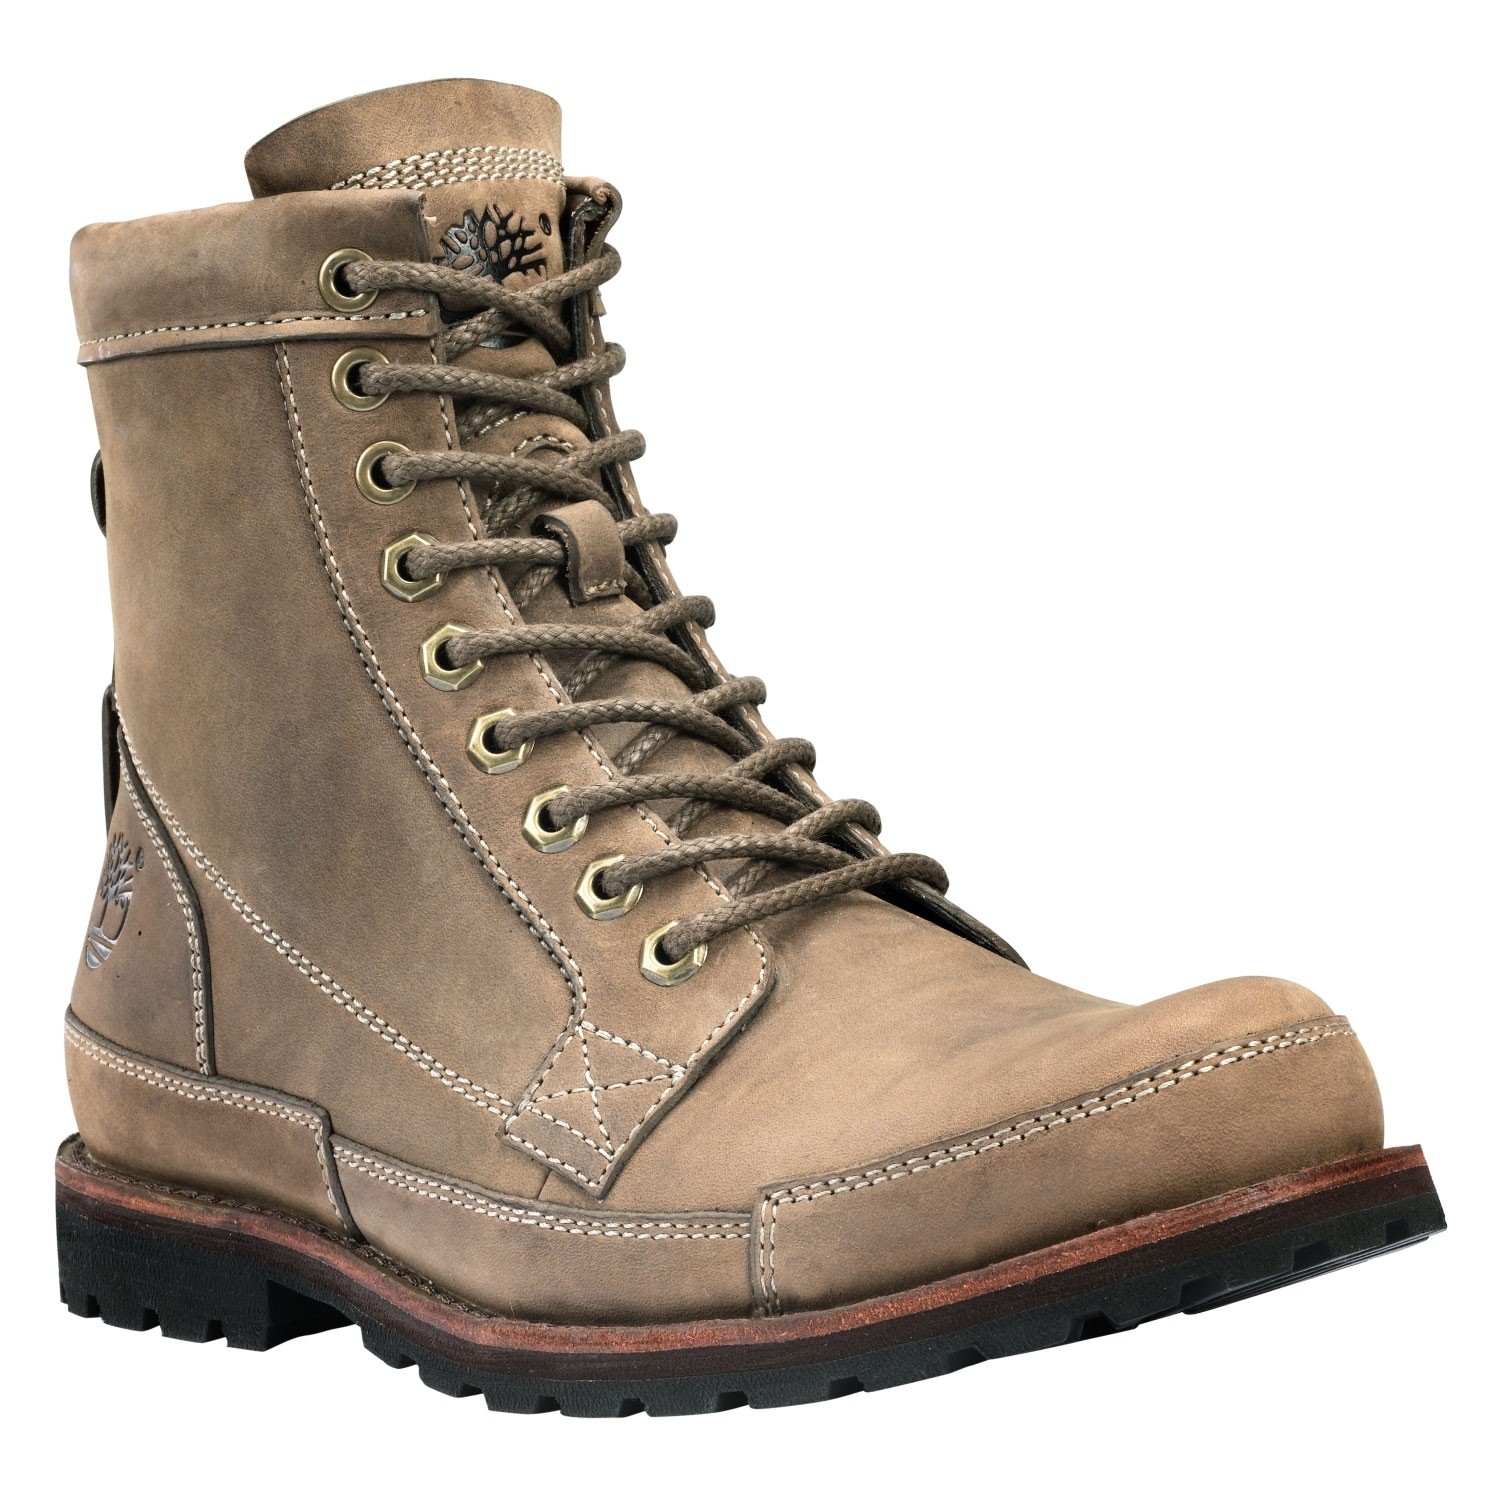 e29c7b169406 Image of Timberland Earthkeepers 6 Inch Leather Boot (Men s) - Distressed  Taupe Full Grain